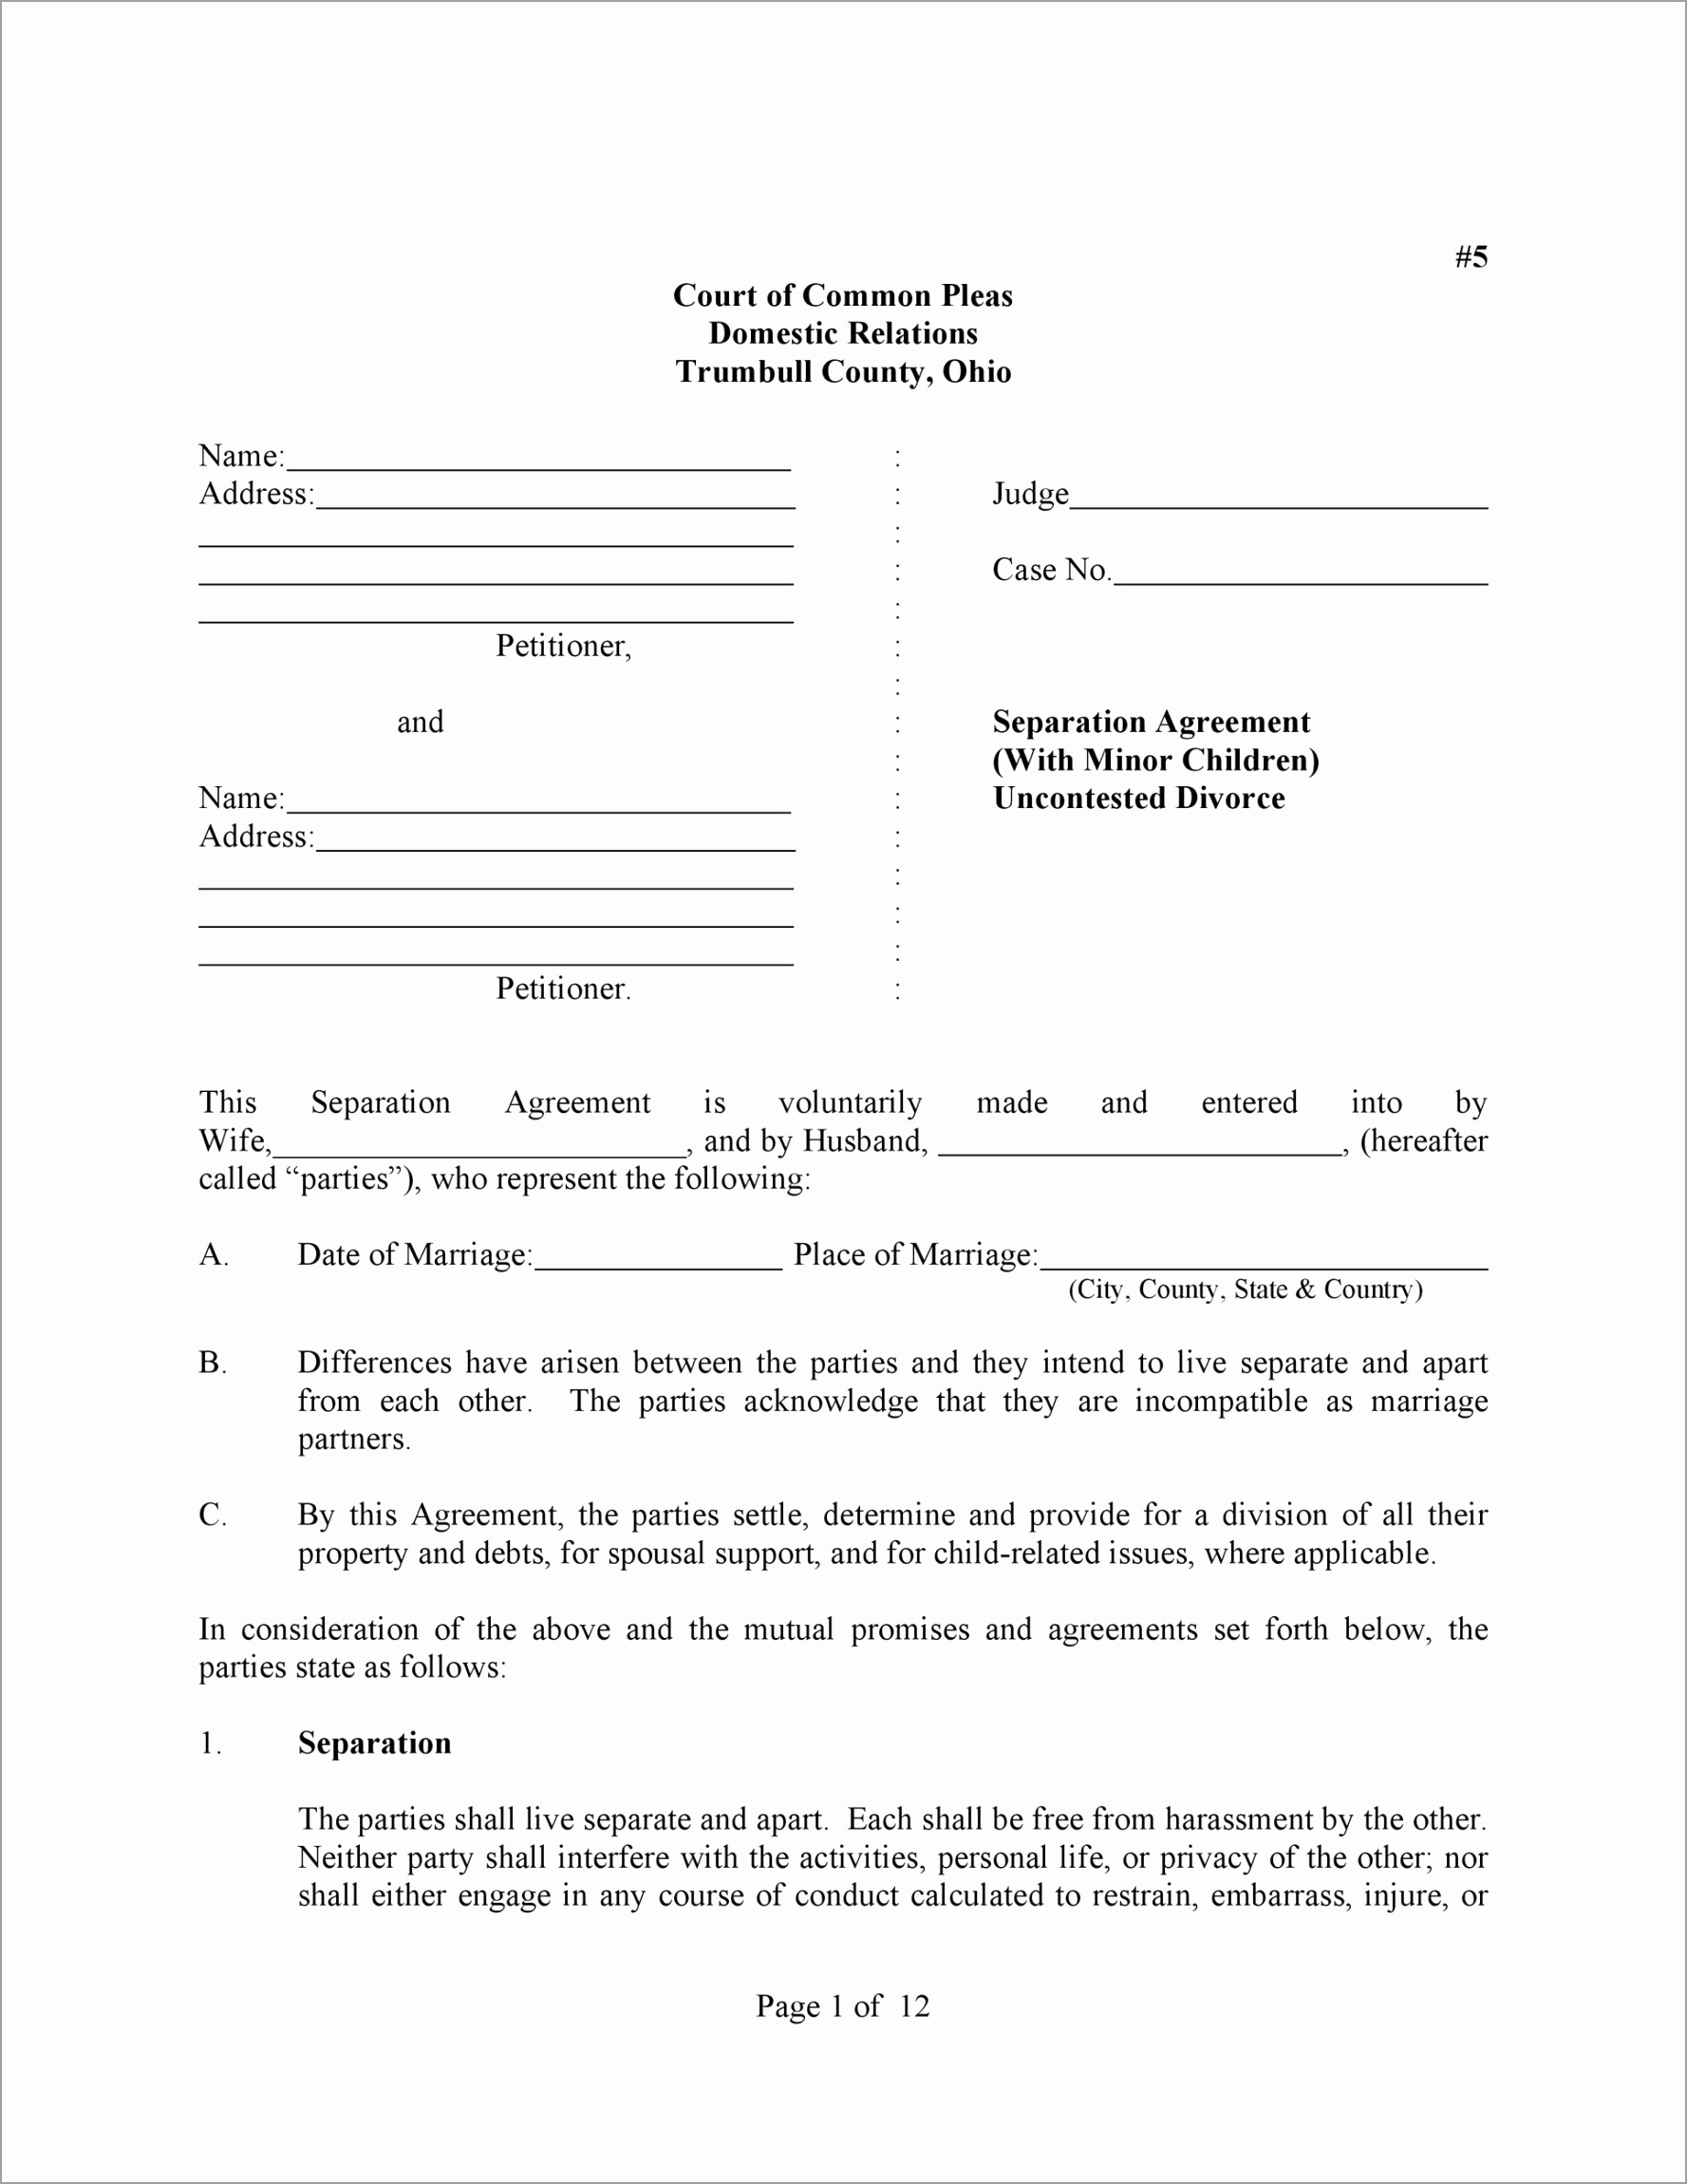 Separation Agreement Template 03 aatur